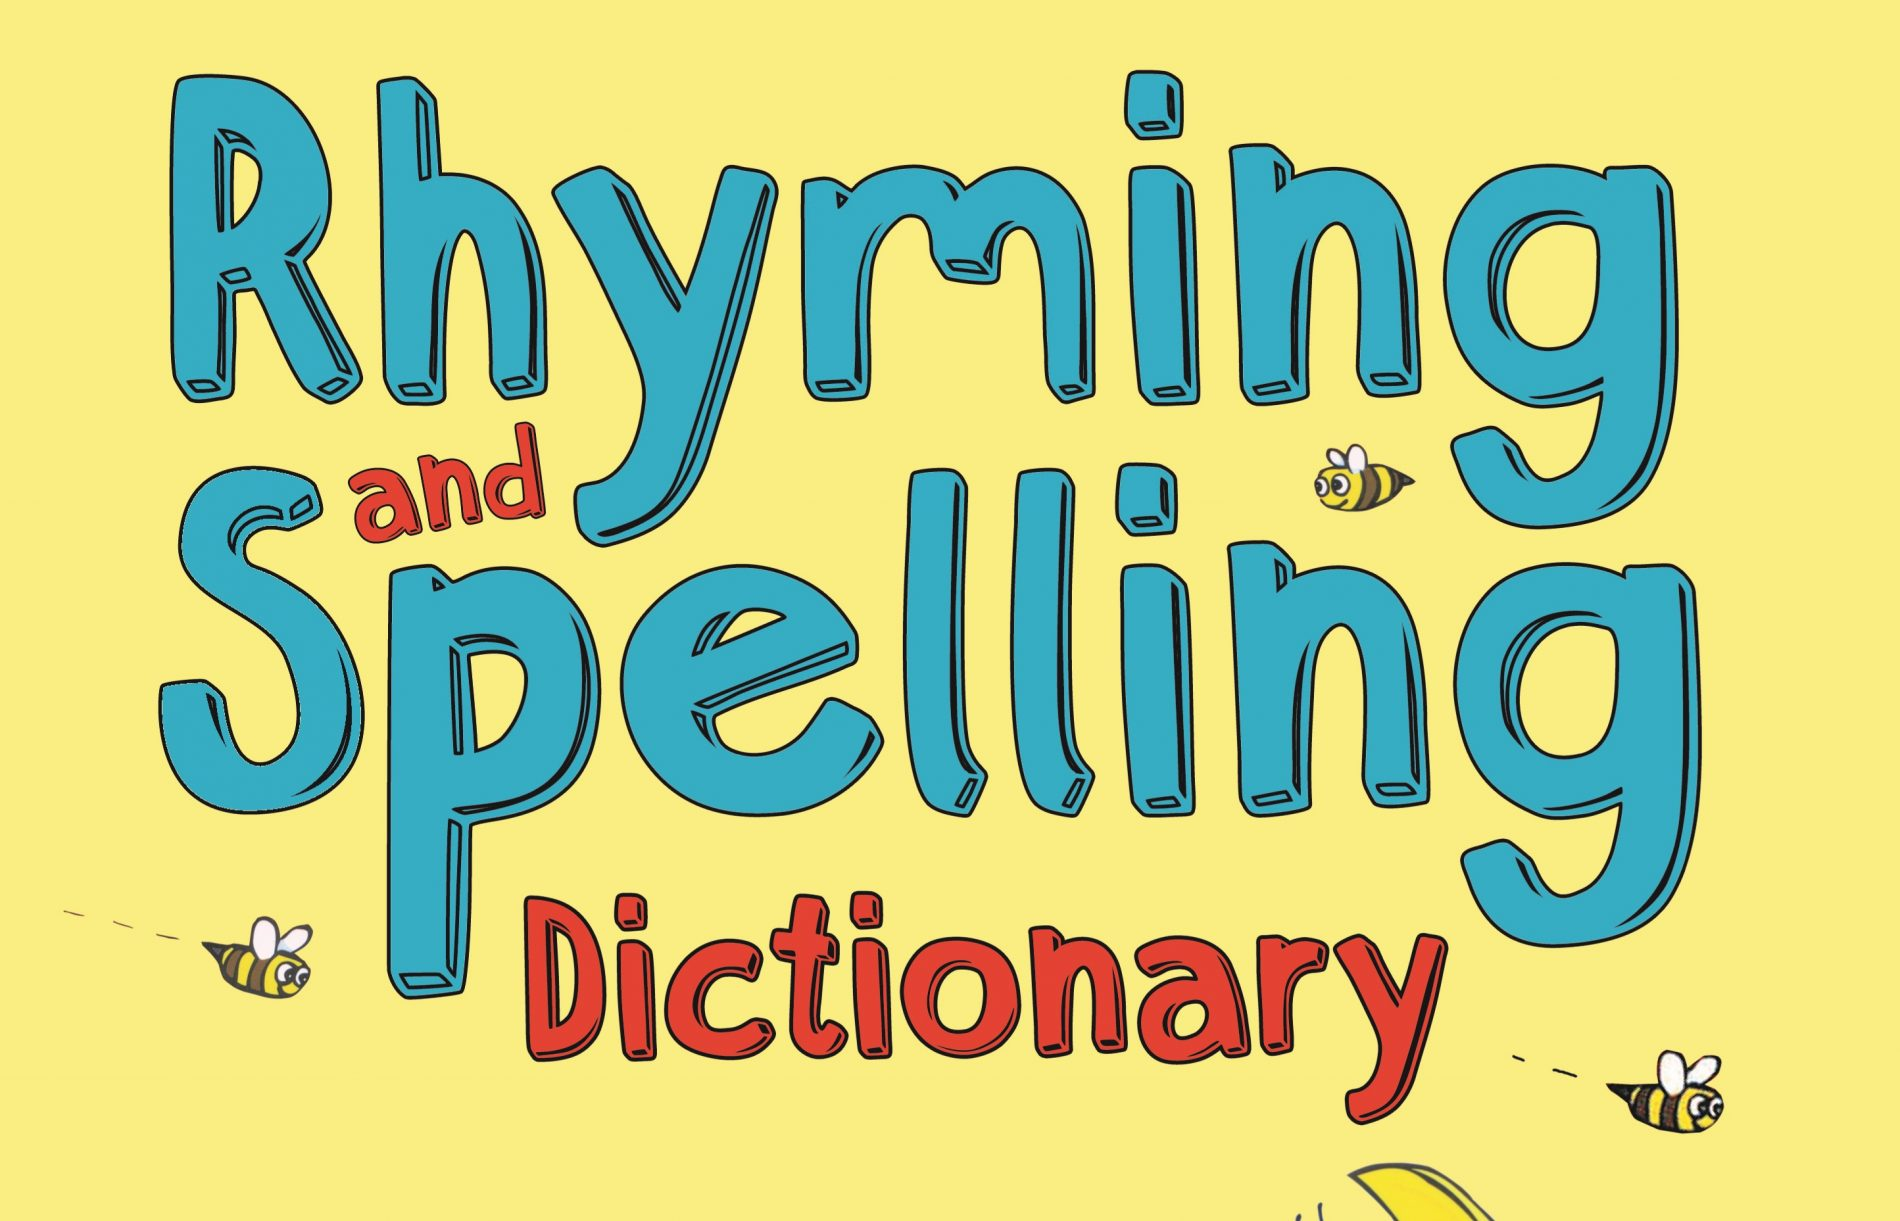 Rhyming Spelling Dictionary